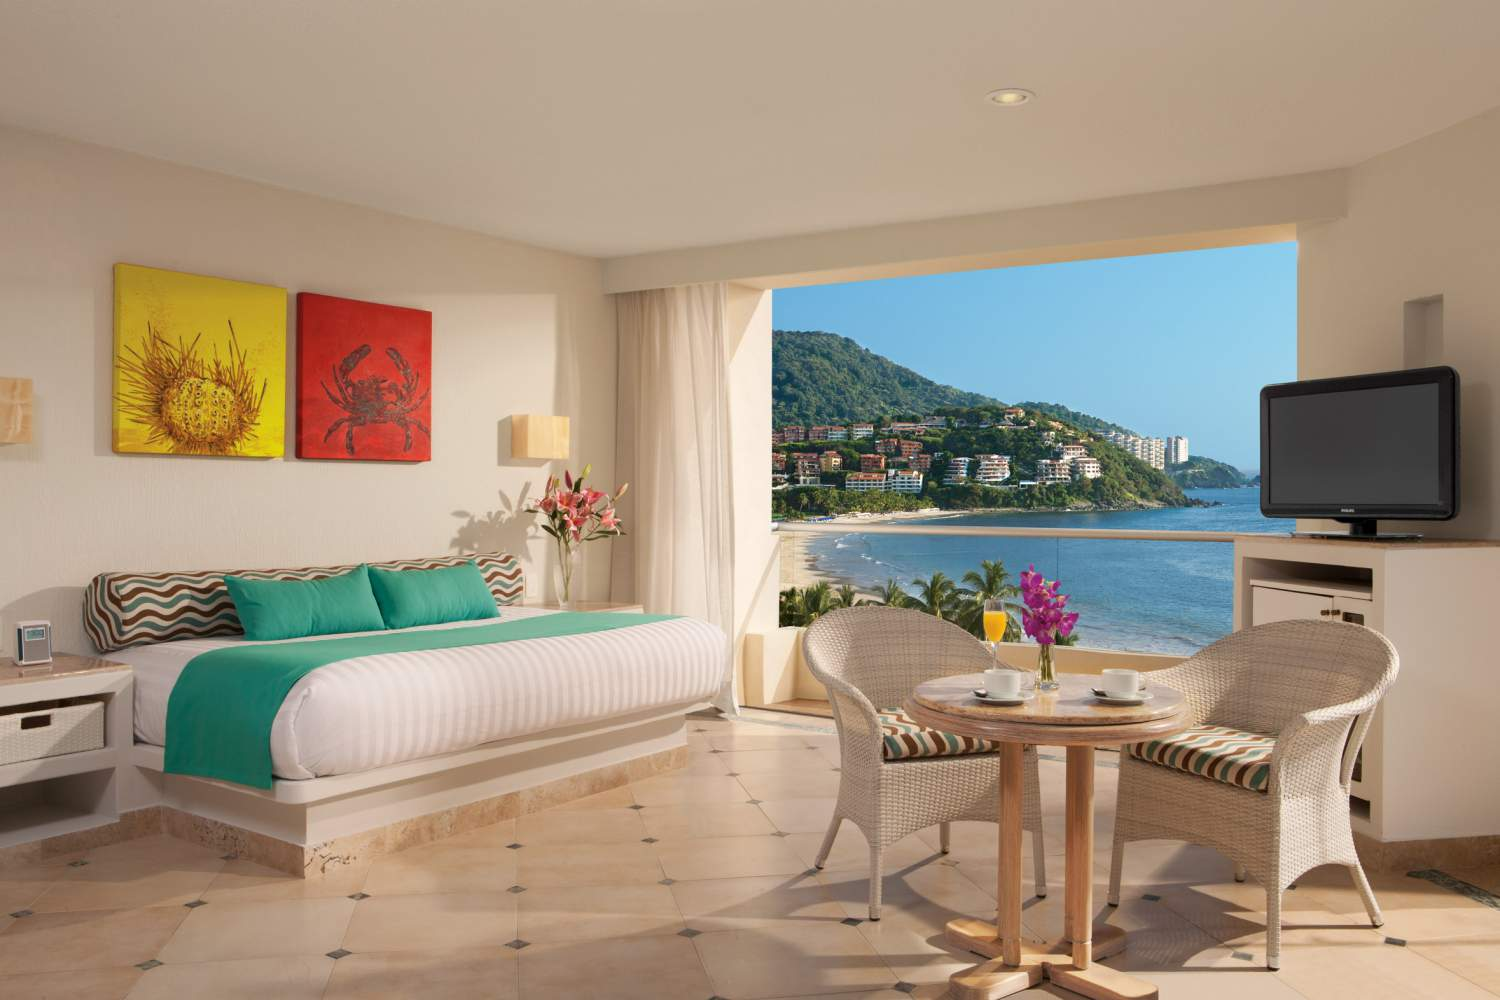 Hôtel Sunscape Dorado Pacifico à Ixtapa au Mexique